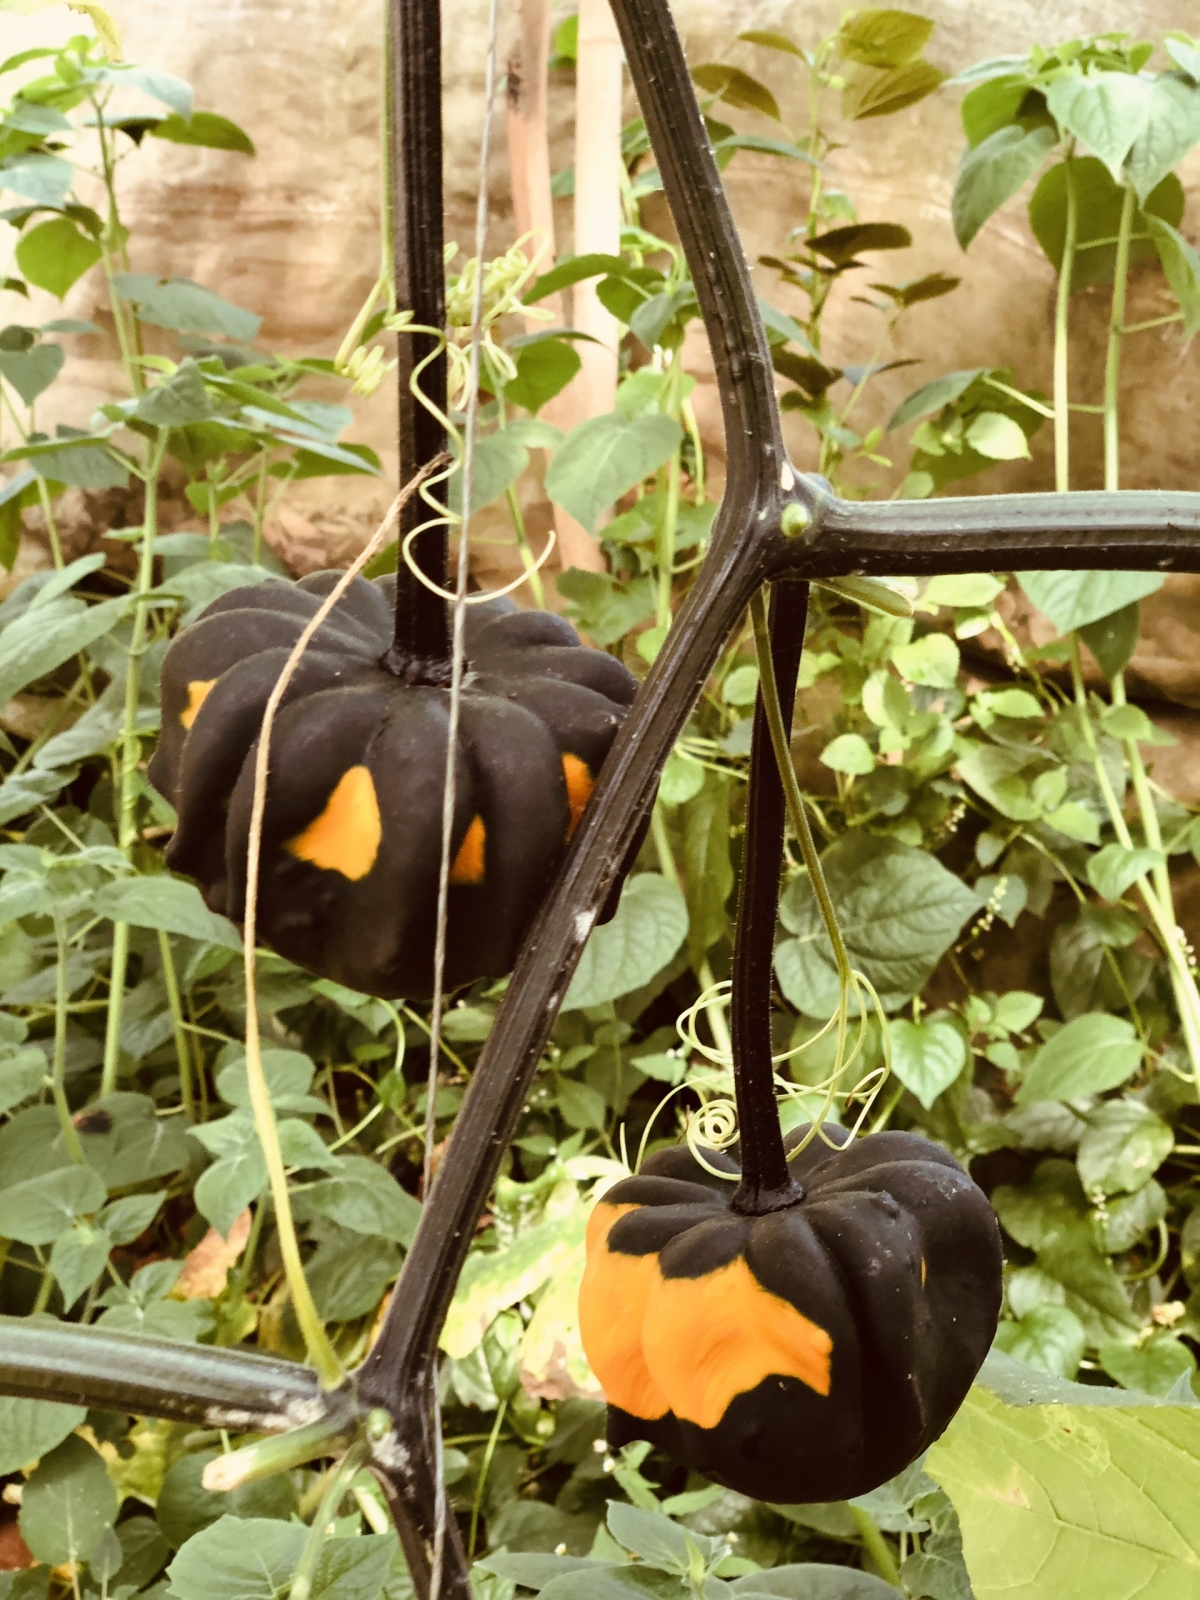 They are primarily used for Halloween decorations.